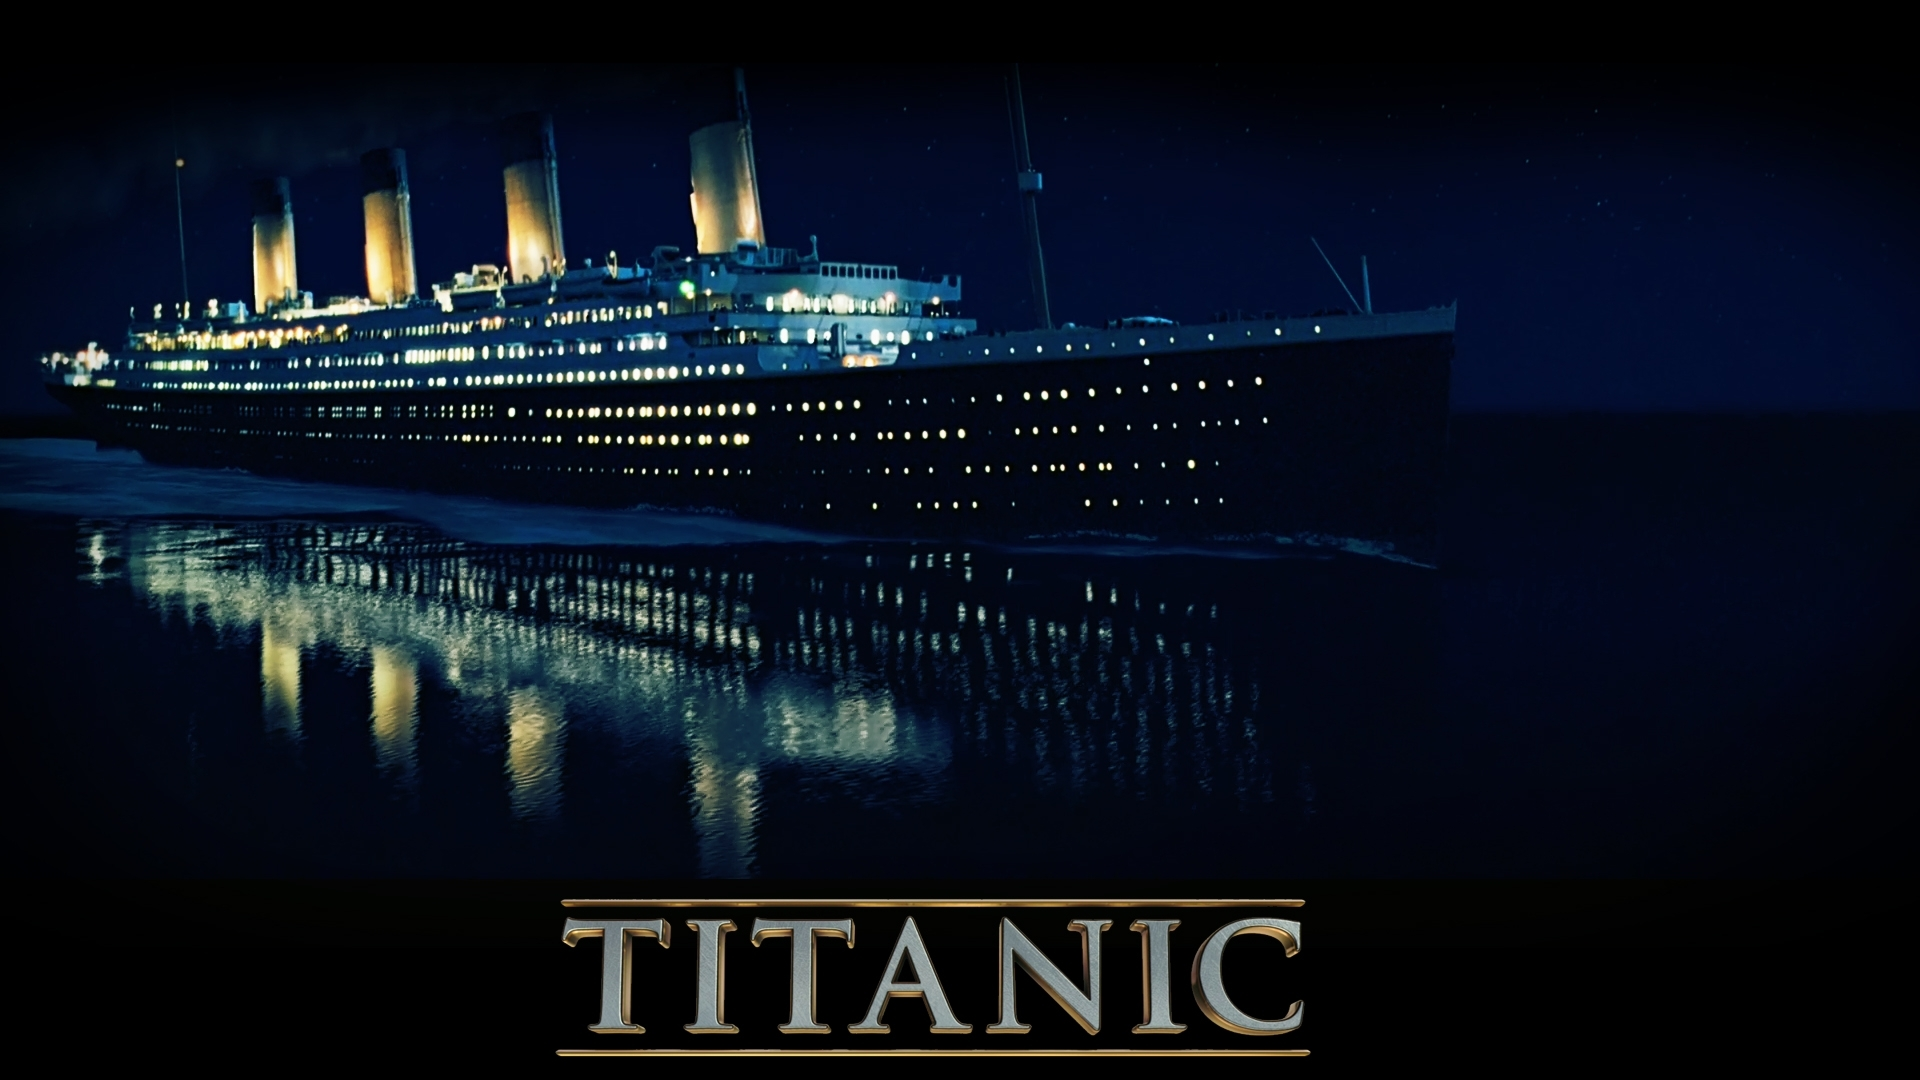 Titanic Build Cost Was 7 5 Million And 200 Million To Make